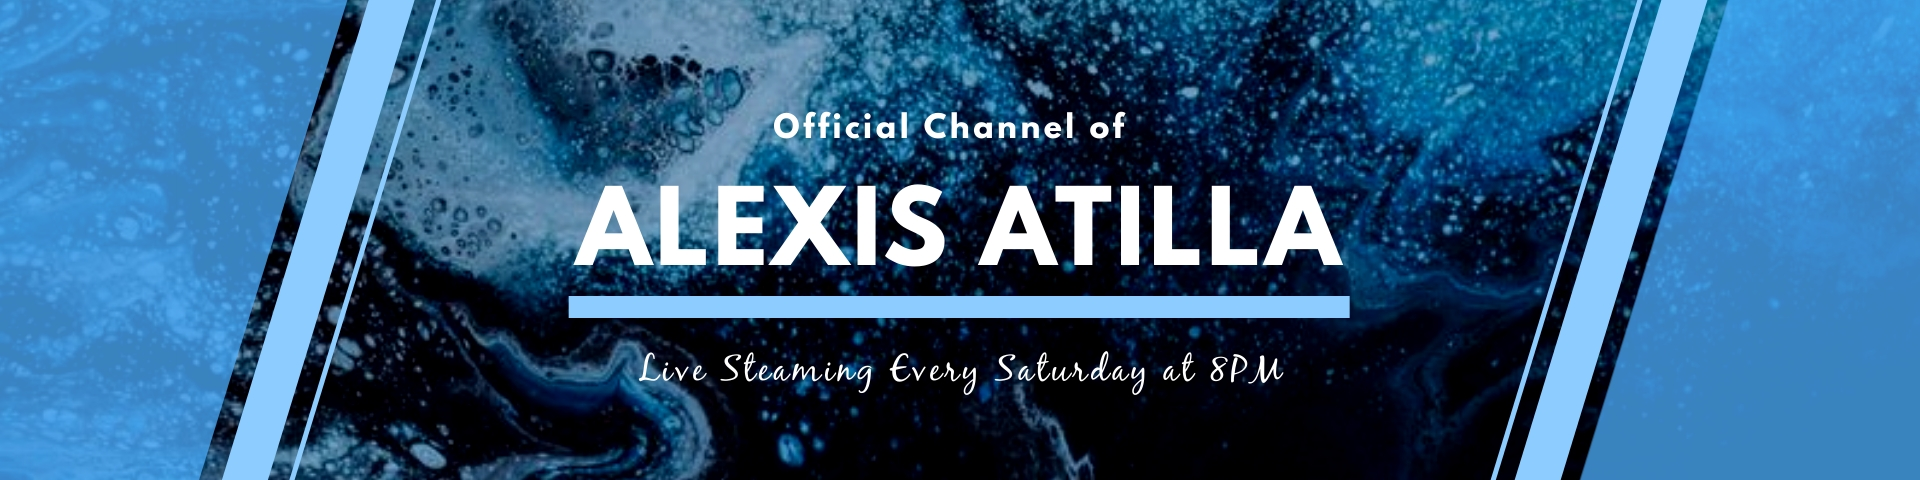 Blue Ocean Abstract Twitch Banner Template